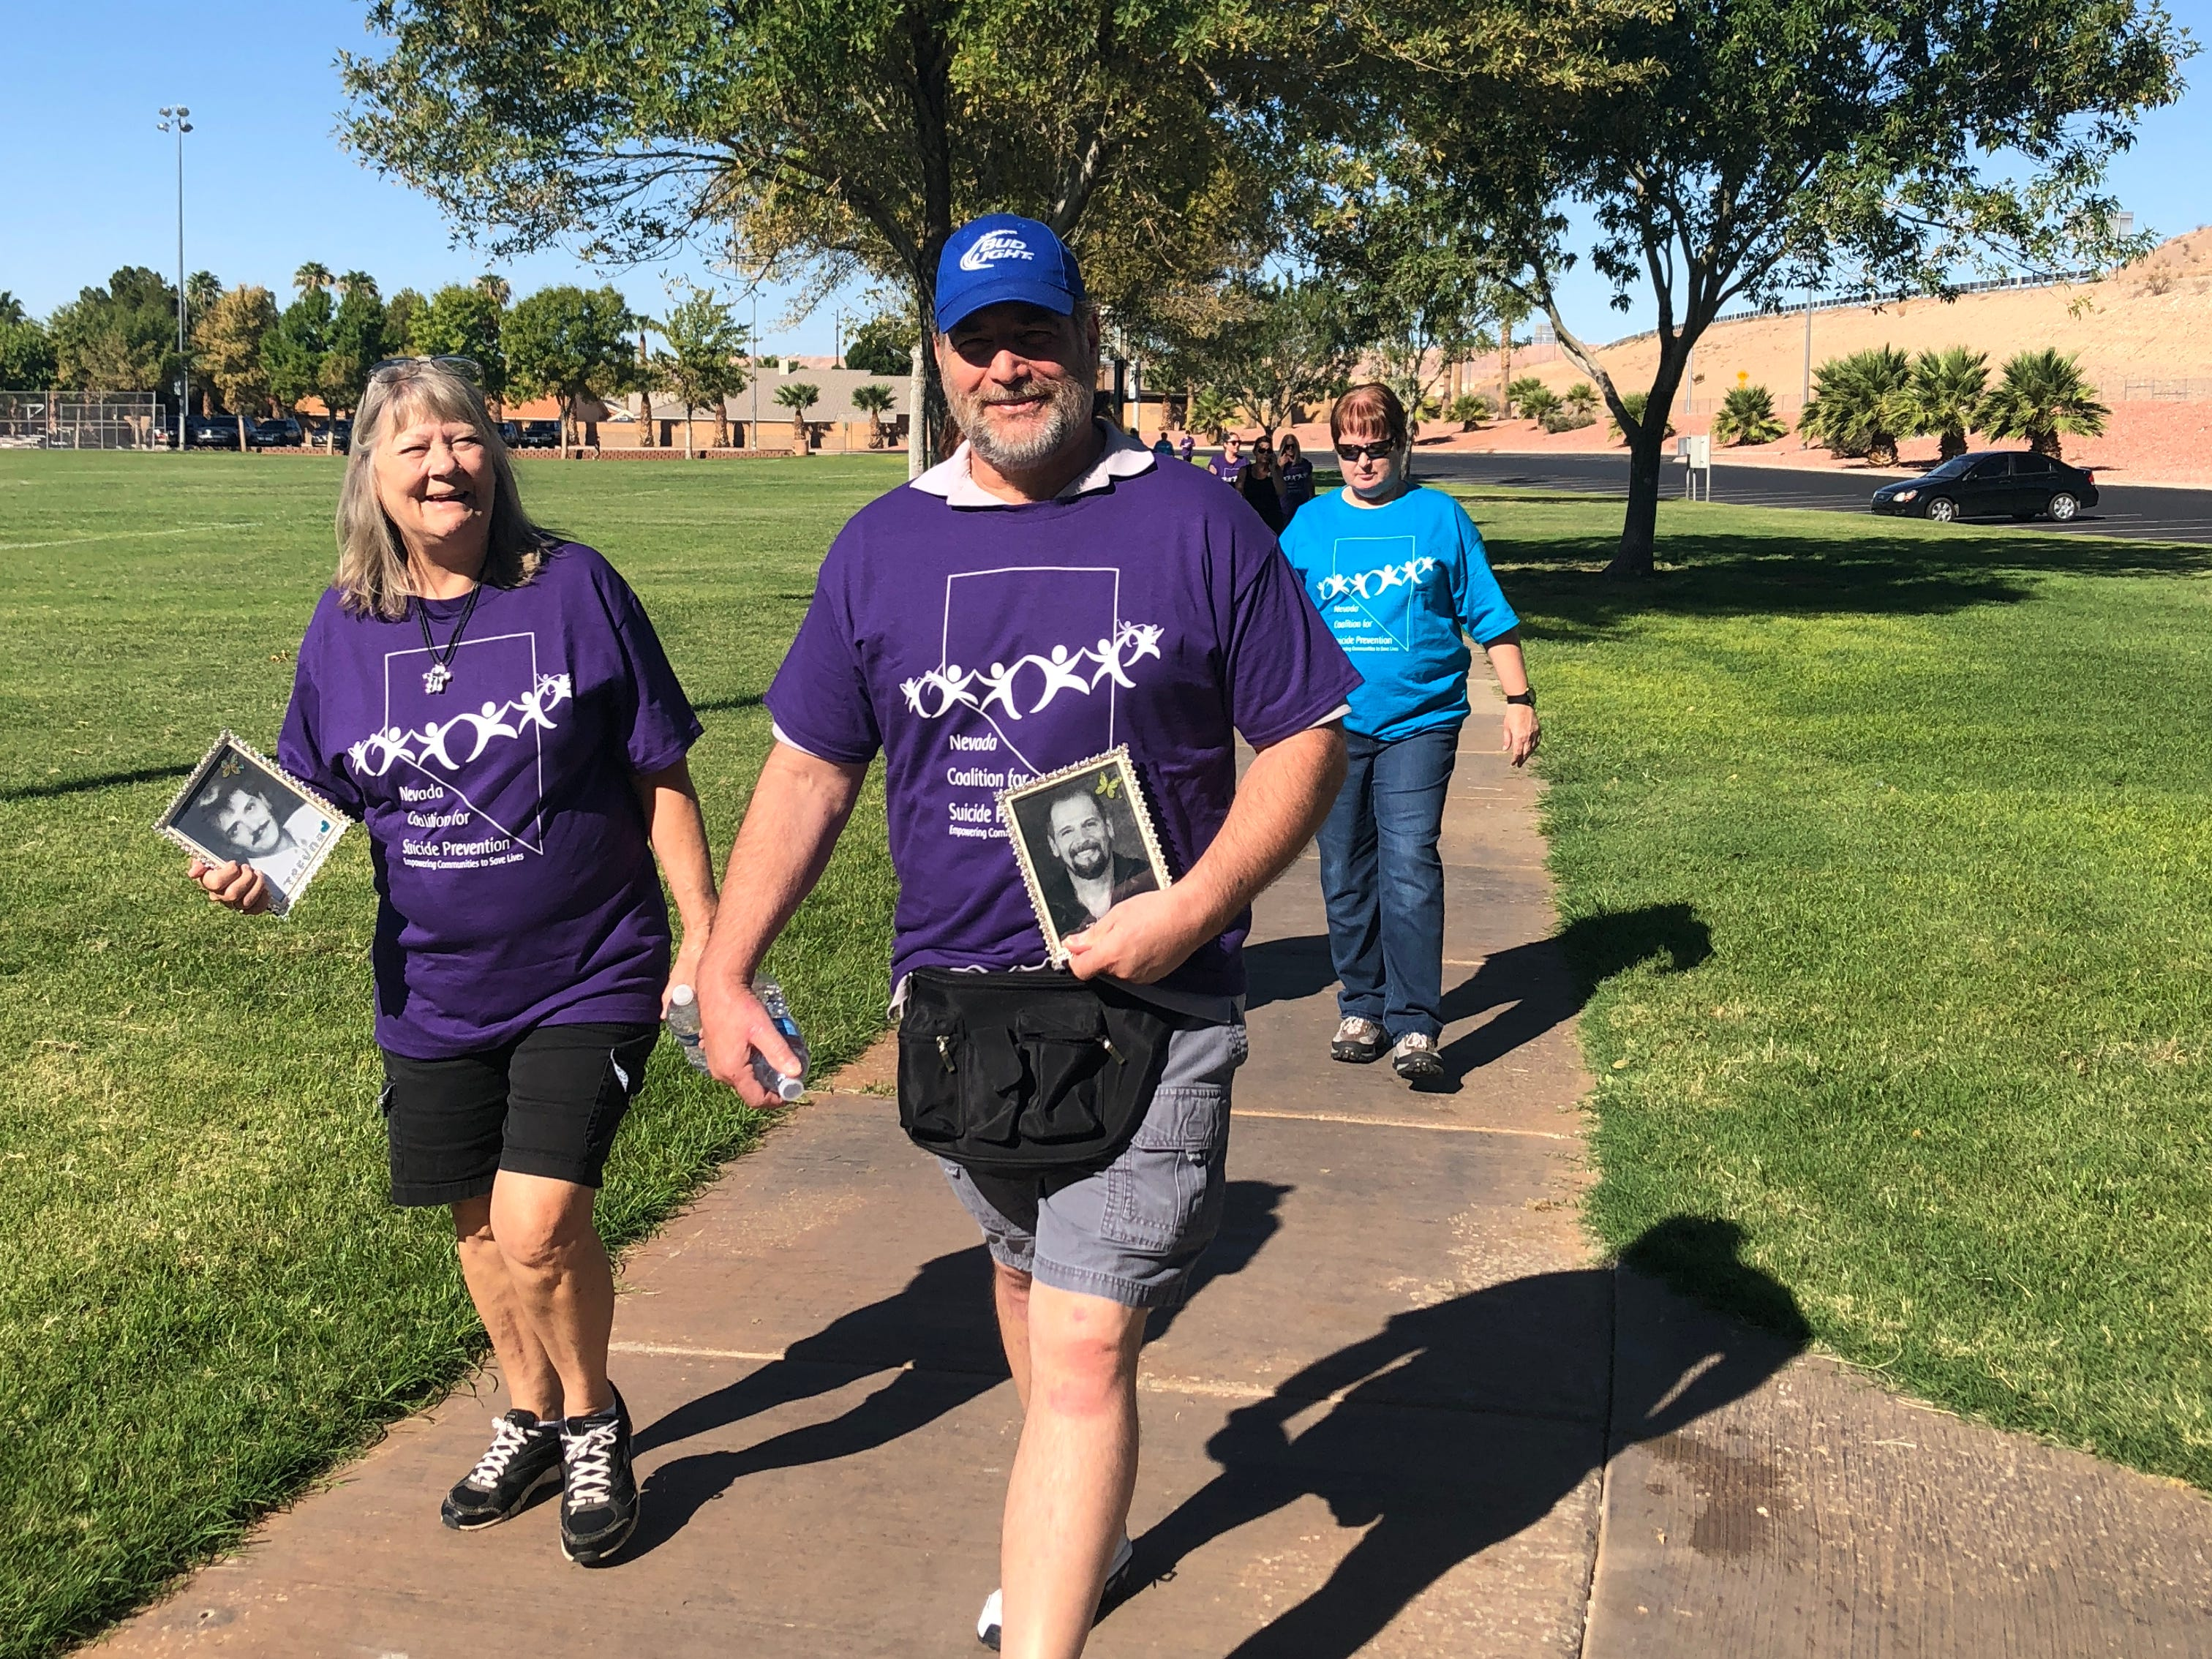 Residents holding photos of loved ones participate in the Walk in Memory, Walk for Hope suicide-prevention community event at the Mesquite Recreation Center on Sept. 15, 2018.